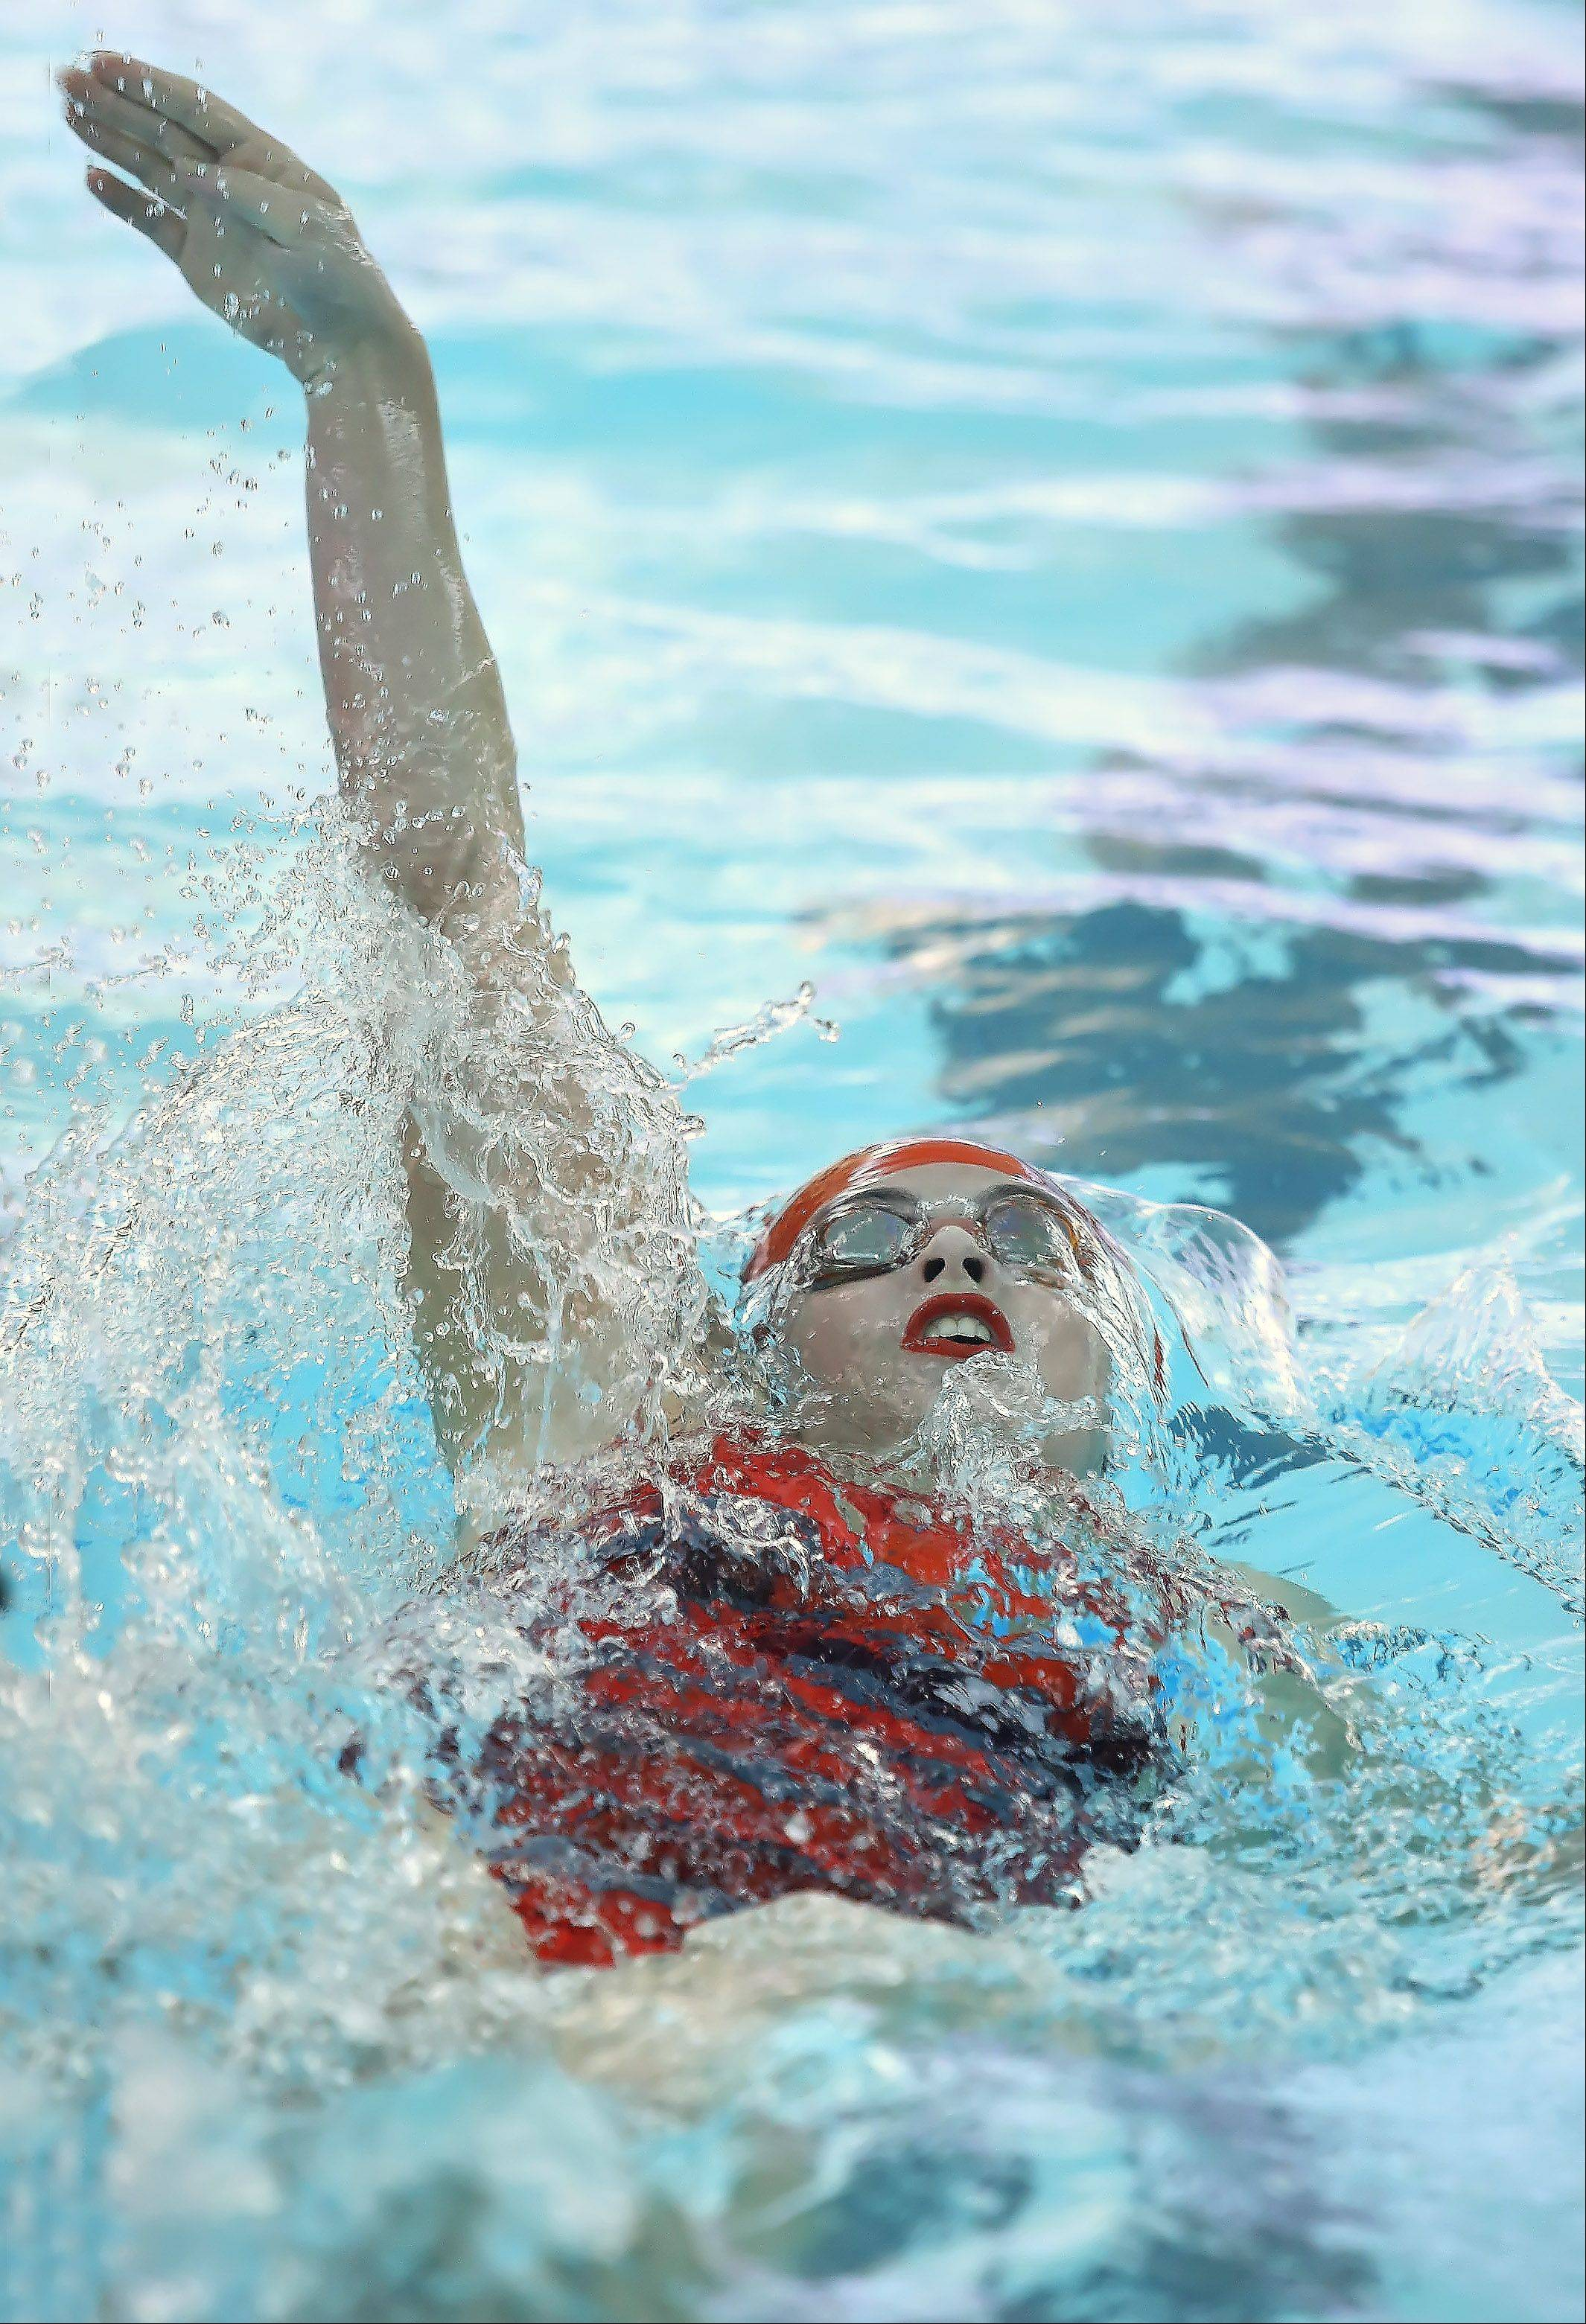 Mundelein's Jenn Kordik, here winning the 200-yard individual medley during a dual meet against Libertyville, will be among the top competitors in Saturday's sectional meet at Vernon Hills.